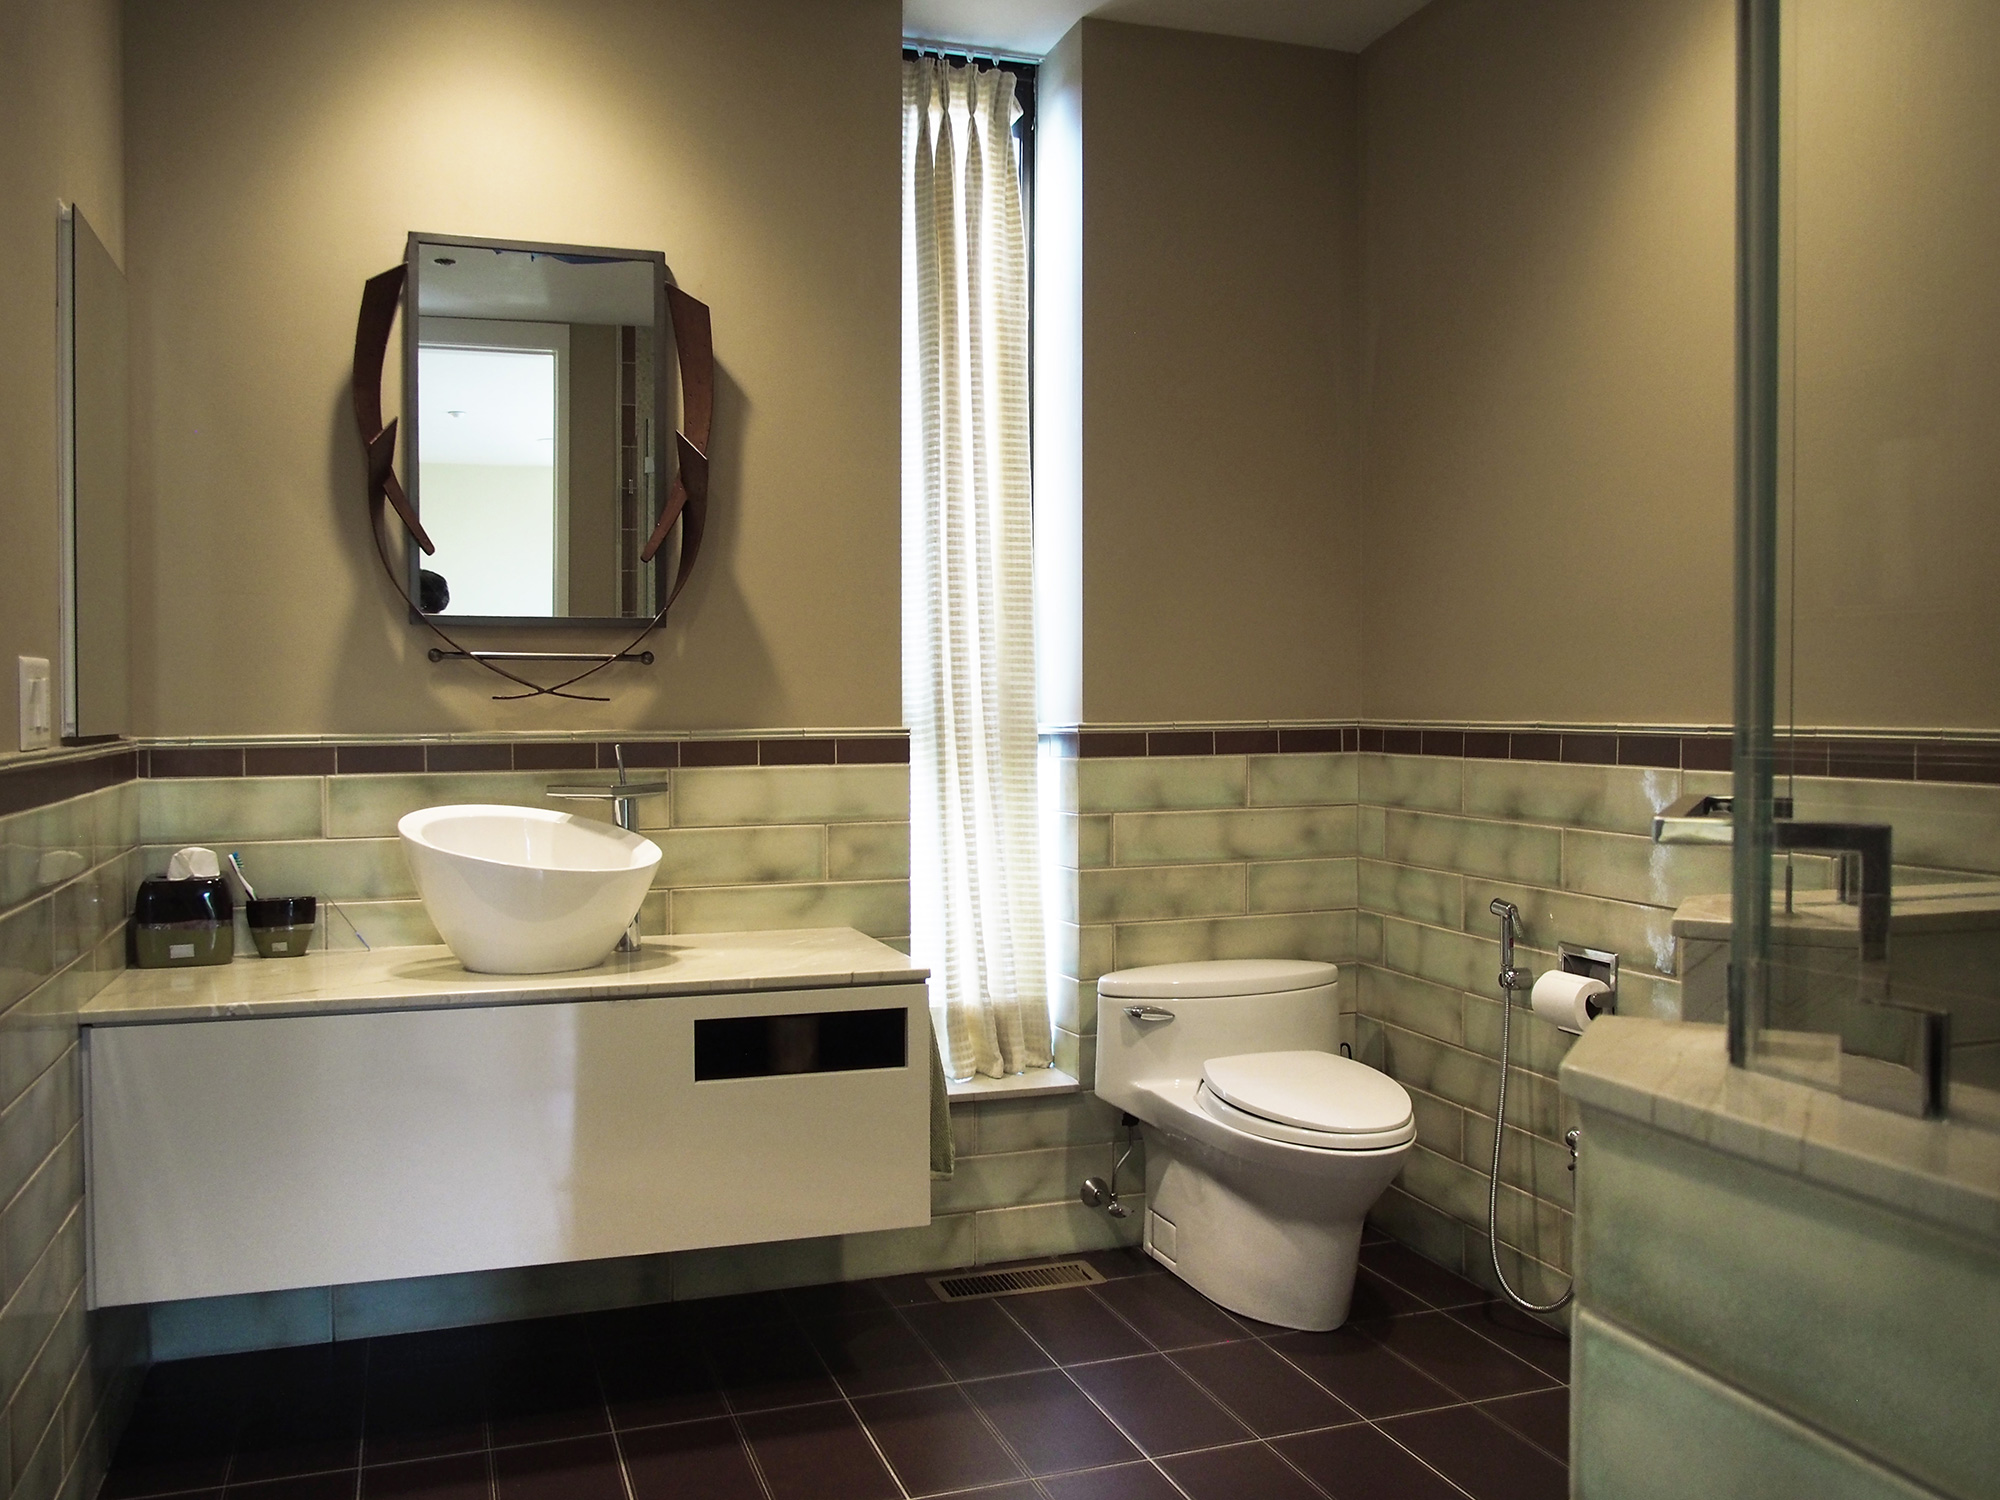 Modern Home in Purchase, En Suite Bathroom 01